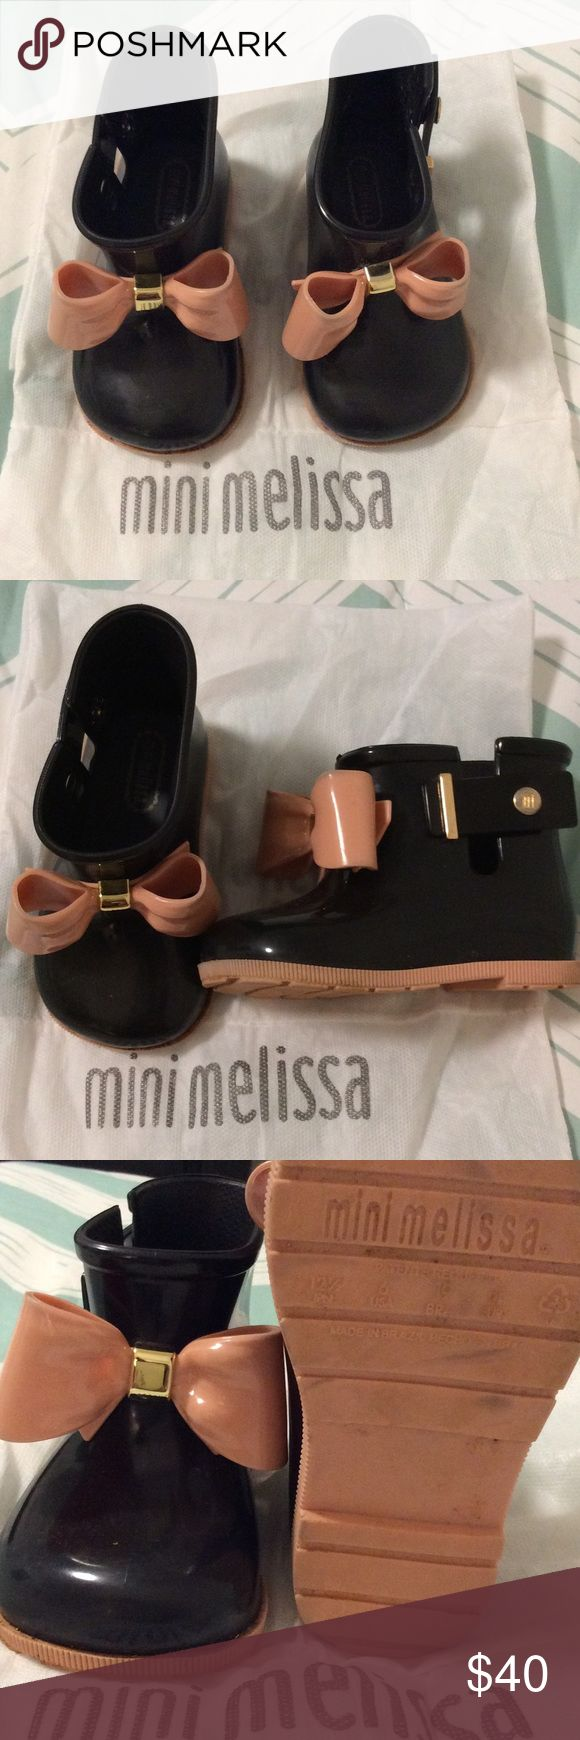 Mini Melissa Sugar Rain Boots in Black size 6 Mini Melissa Sugar Rain Boots in Black. Love the fruit scented cuteness of these rain boots. Good condition. Size 6 Comes with duster. Bows on front add a sweet touch. No marks or scuffs. Mini Melissa Shoes Rain & Snow Boots